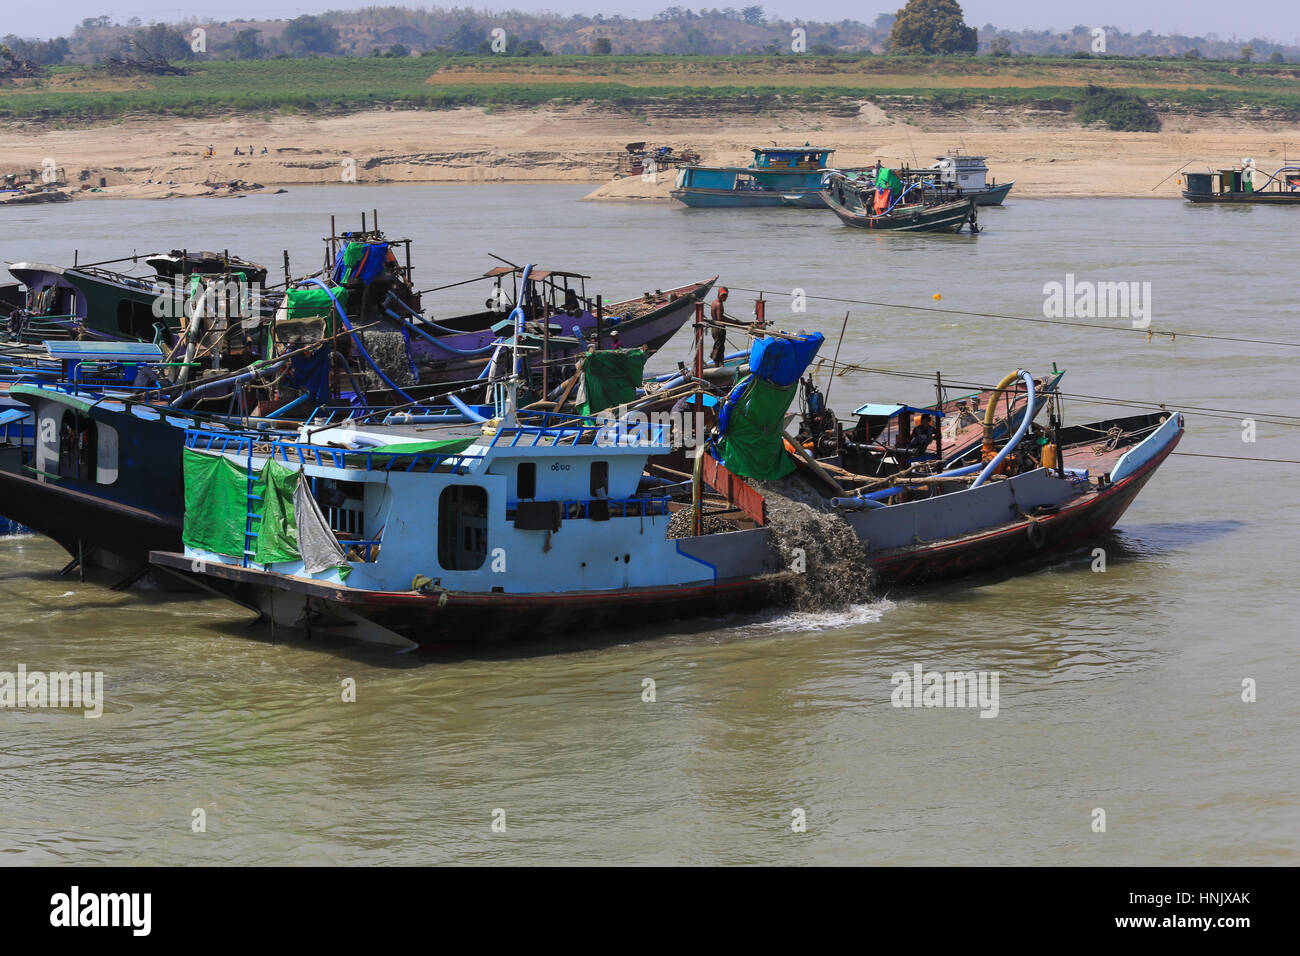 Several gold dredge boats on the Irrawaddy River in Myanmar (Burma